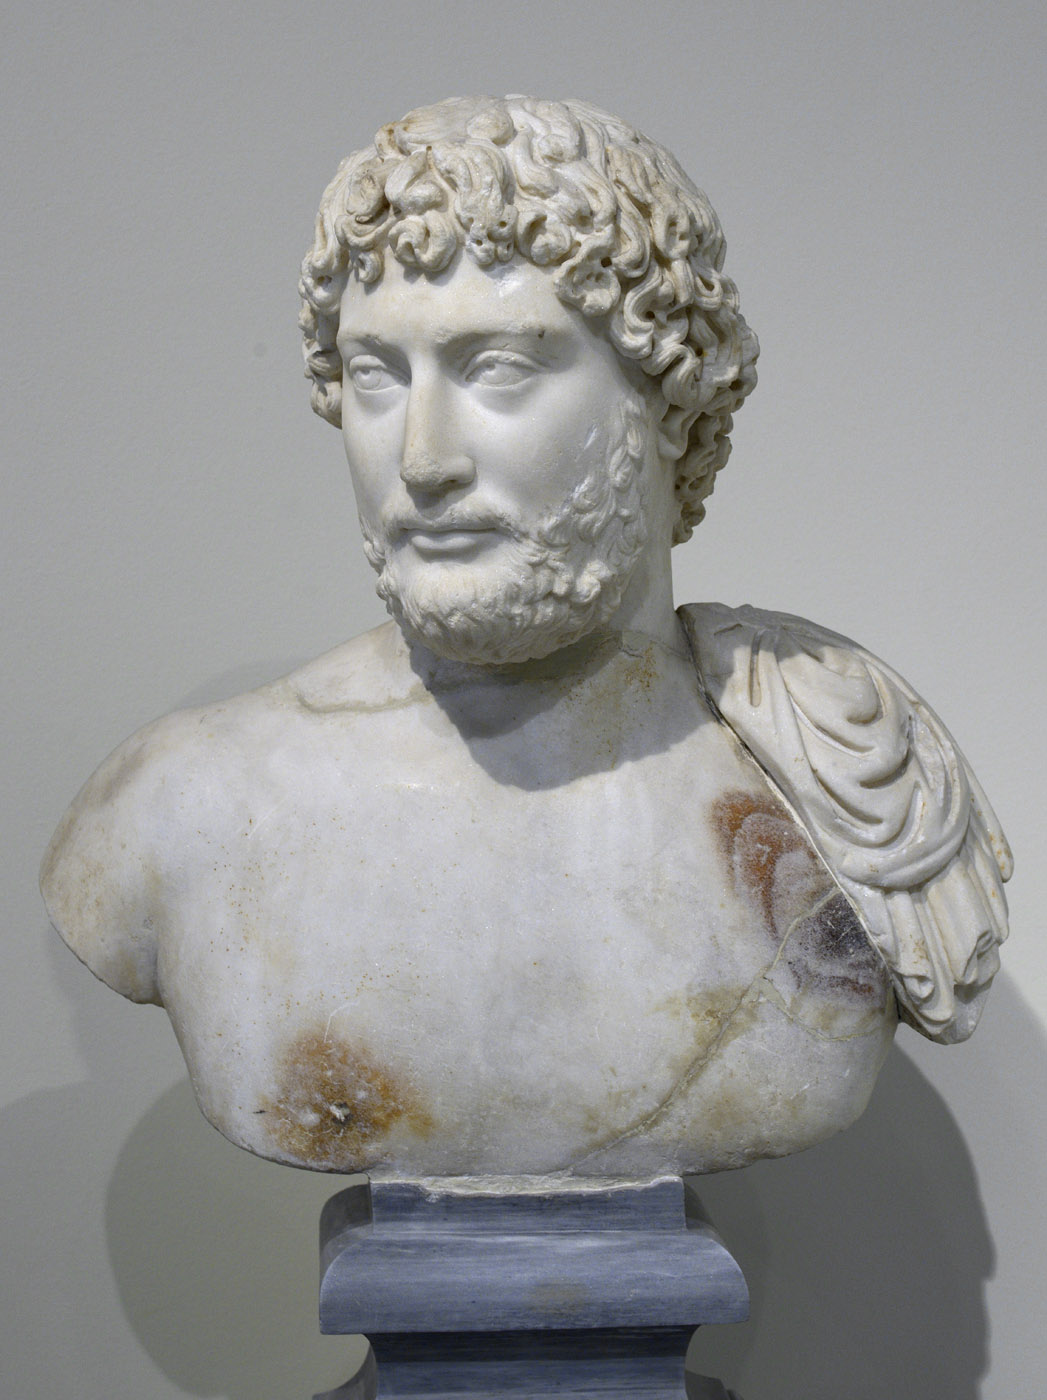 Portrait bust of the emperor Hadrian with idealistic features. Pentelic marble. Ca. 130 CE. Inv. No. 249. Athens, National Archaeological Museum